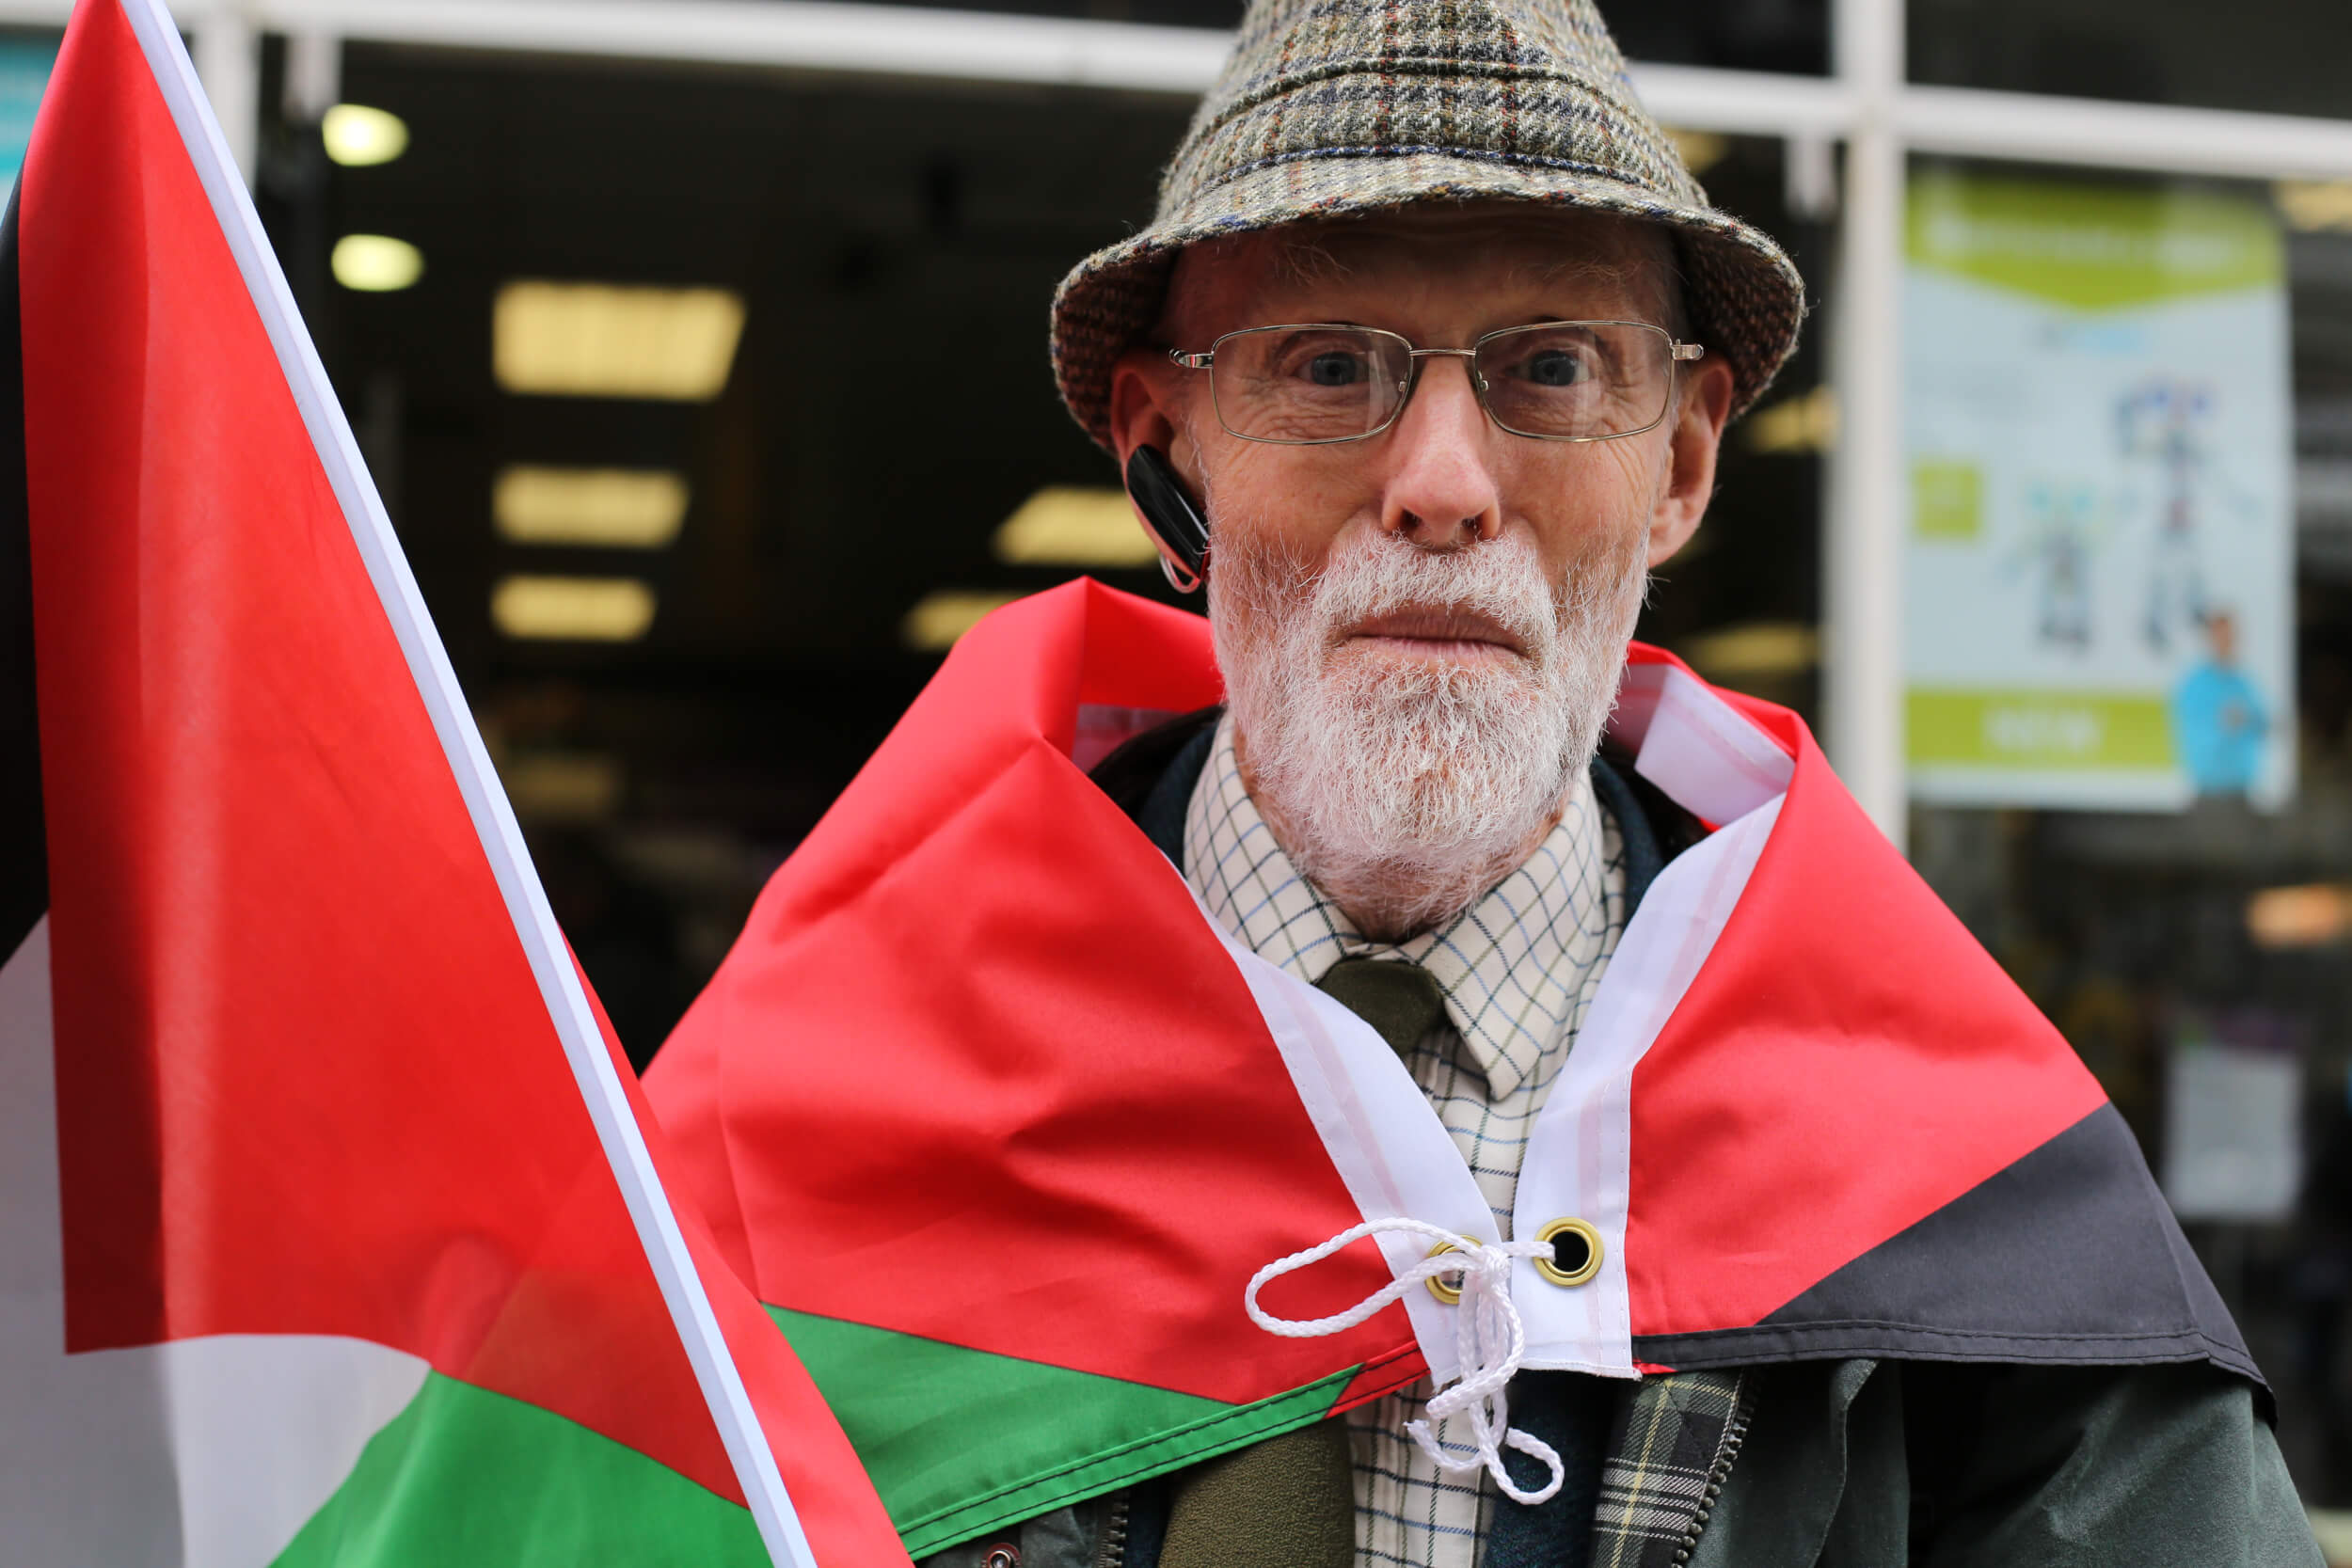 Two flags are better than one. Support for Palestine is growing among all sectors of society in the UK. (Photo: Sara Anna)